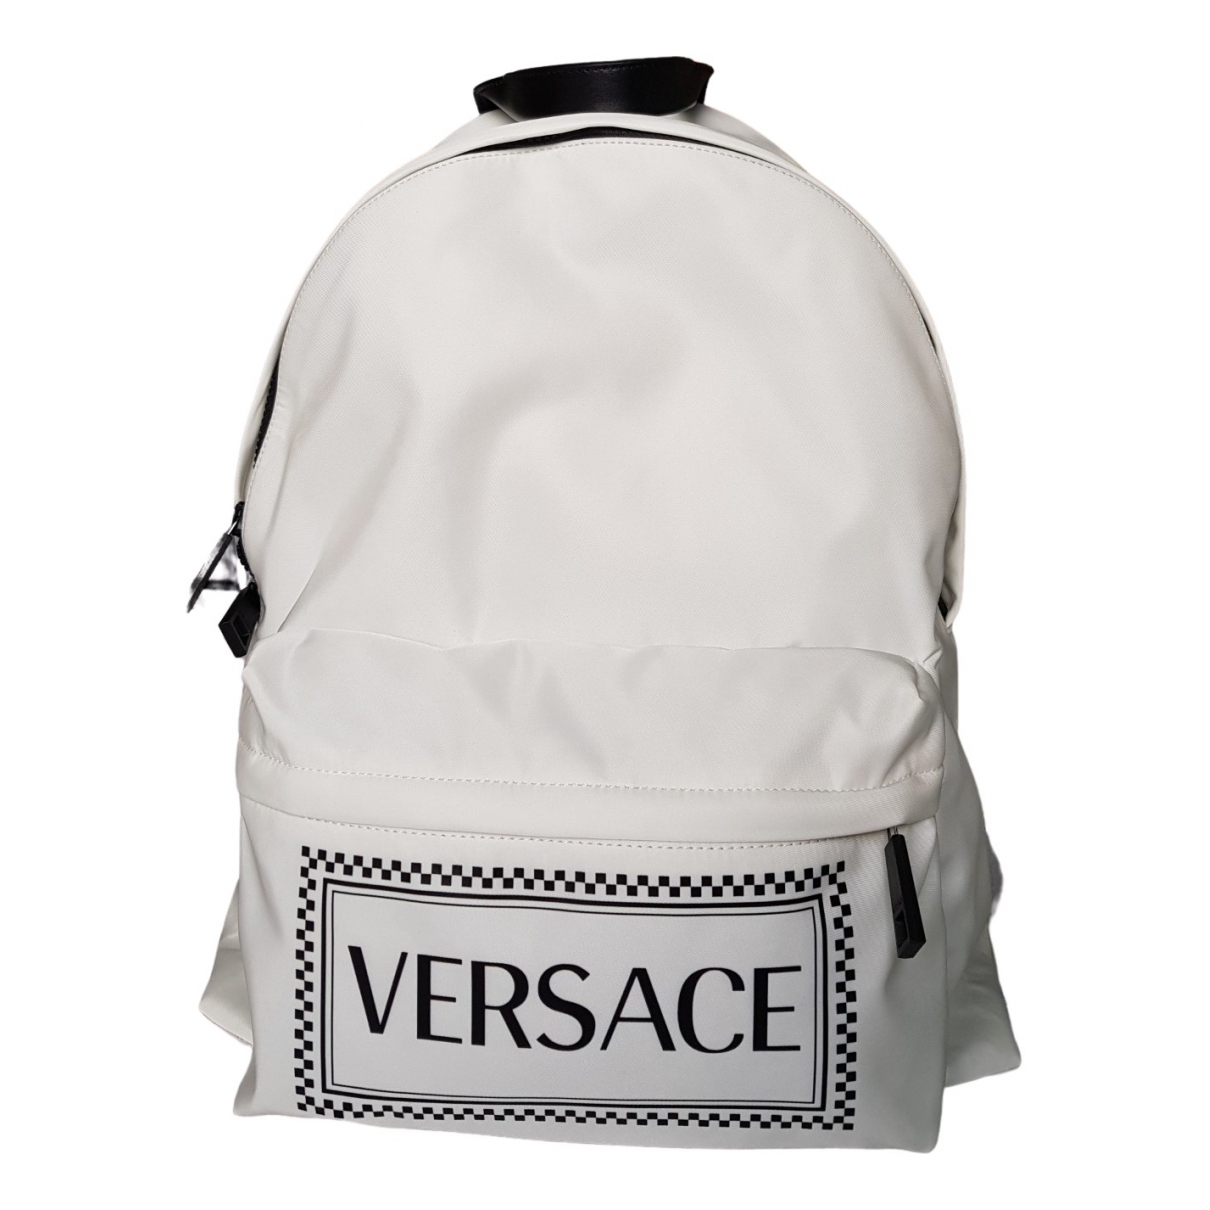 Versace \N White Cloth bag for Men \N